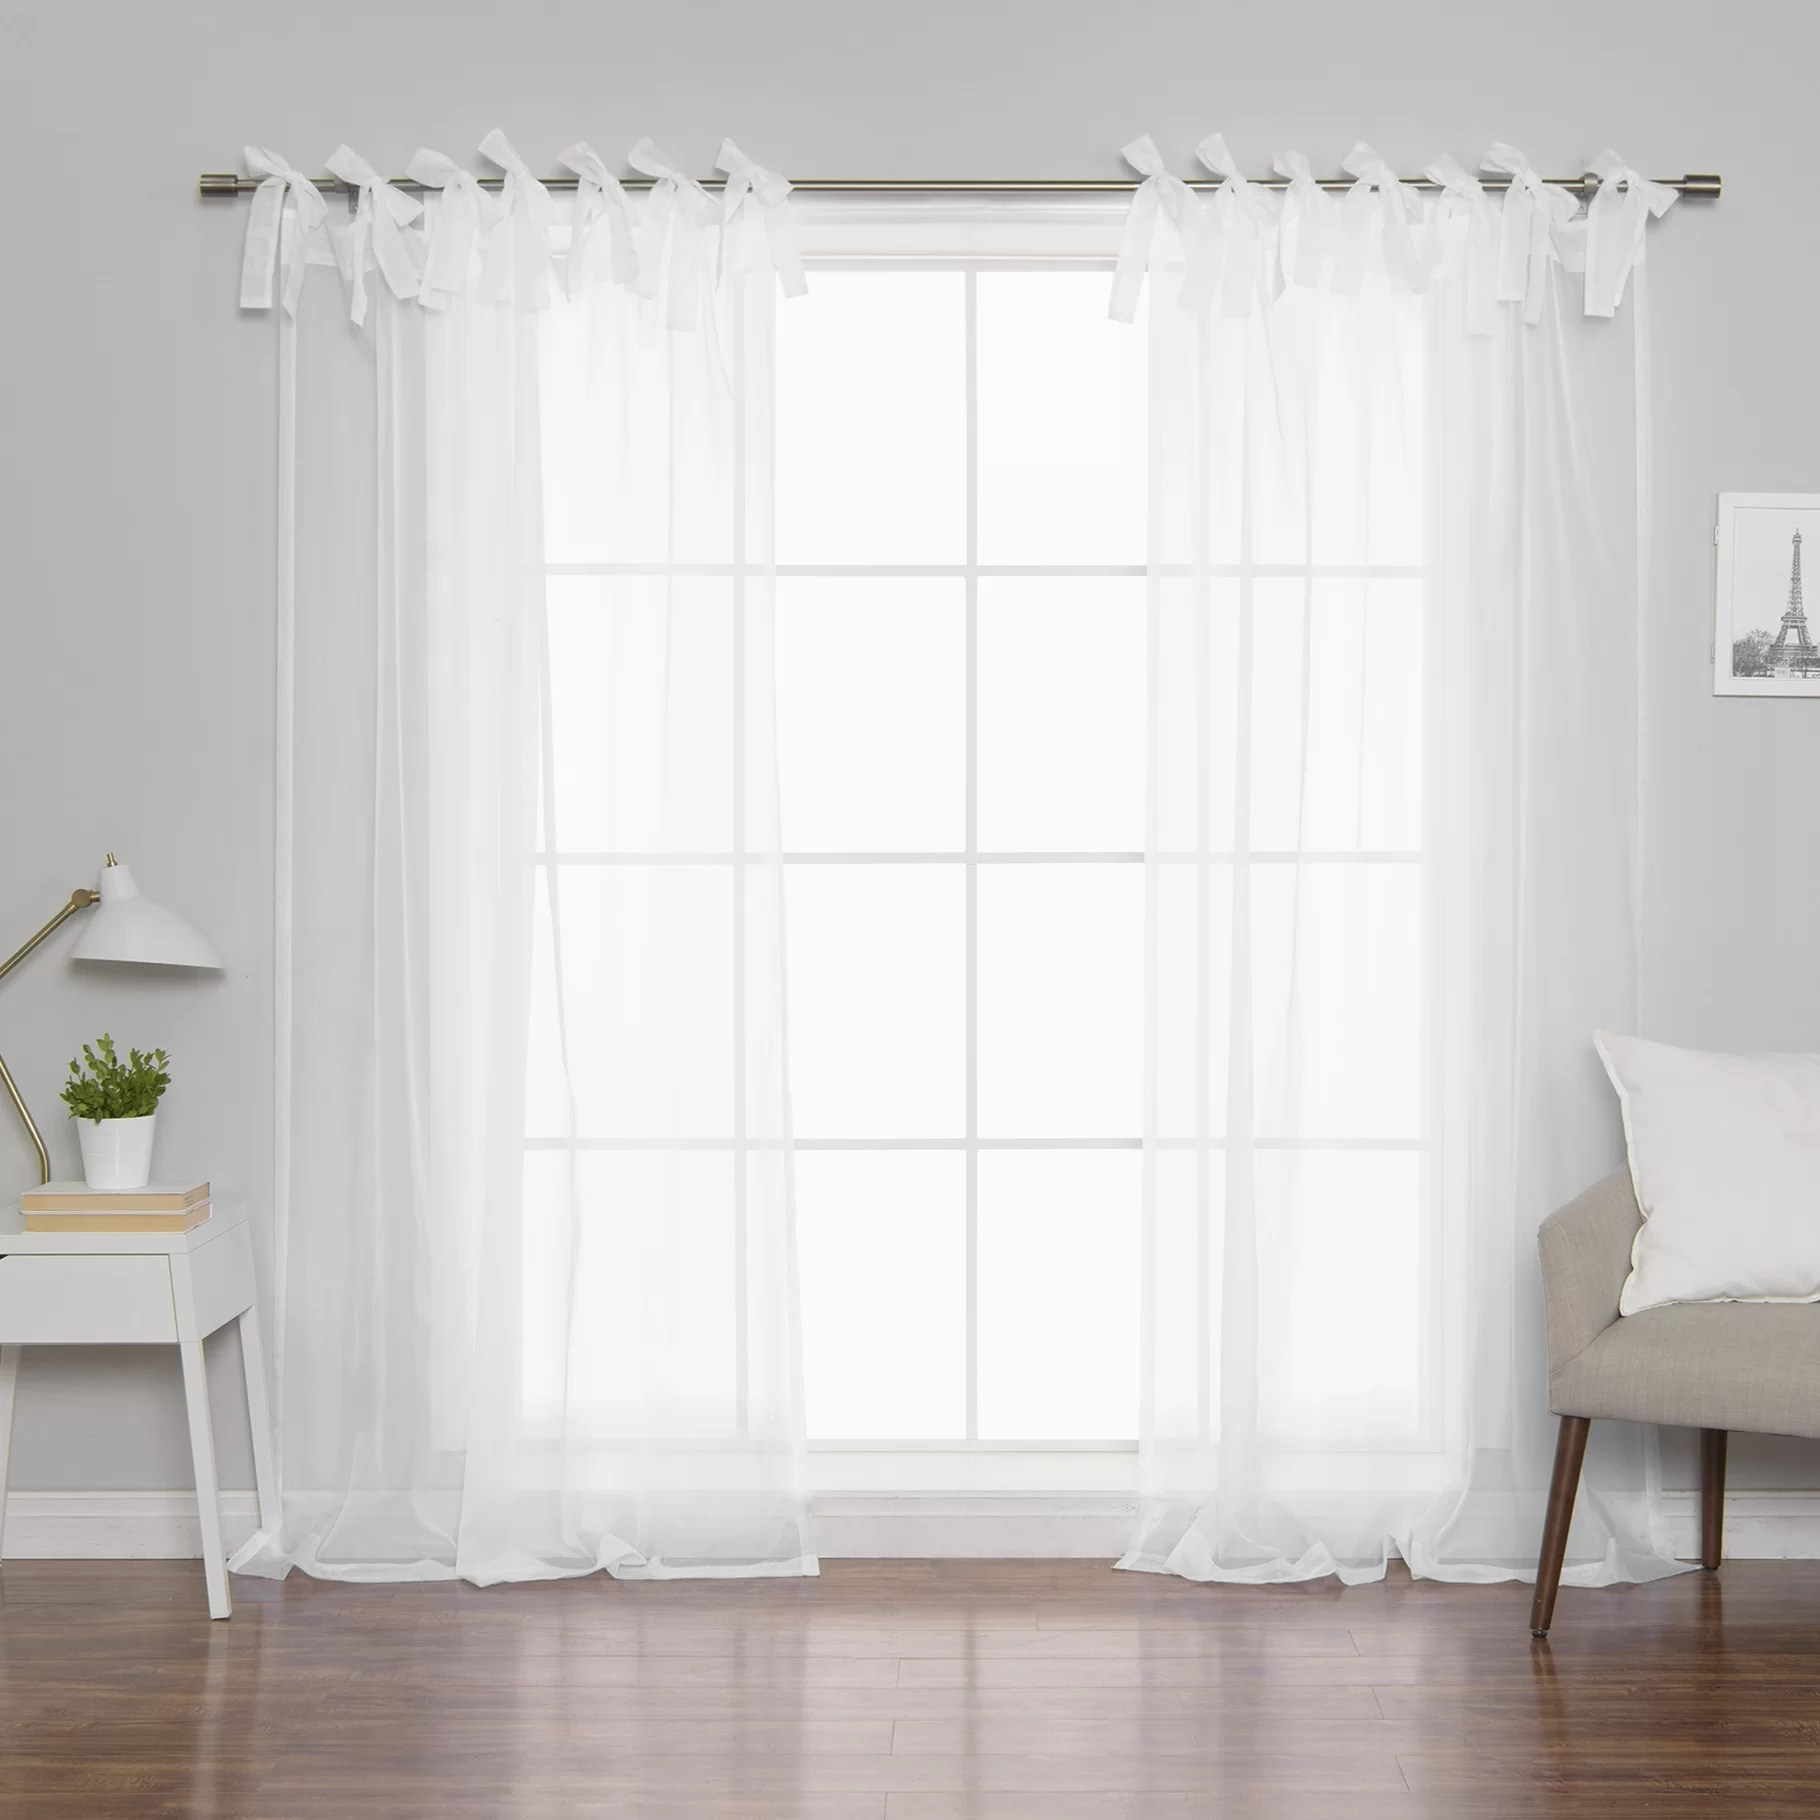 Tab Top Curtain Roseline Voile Solid Sheer Tab Top Curtain Panels